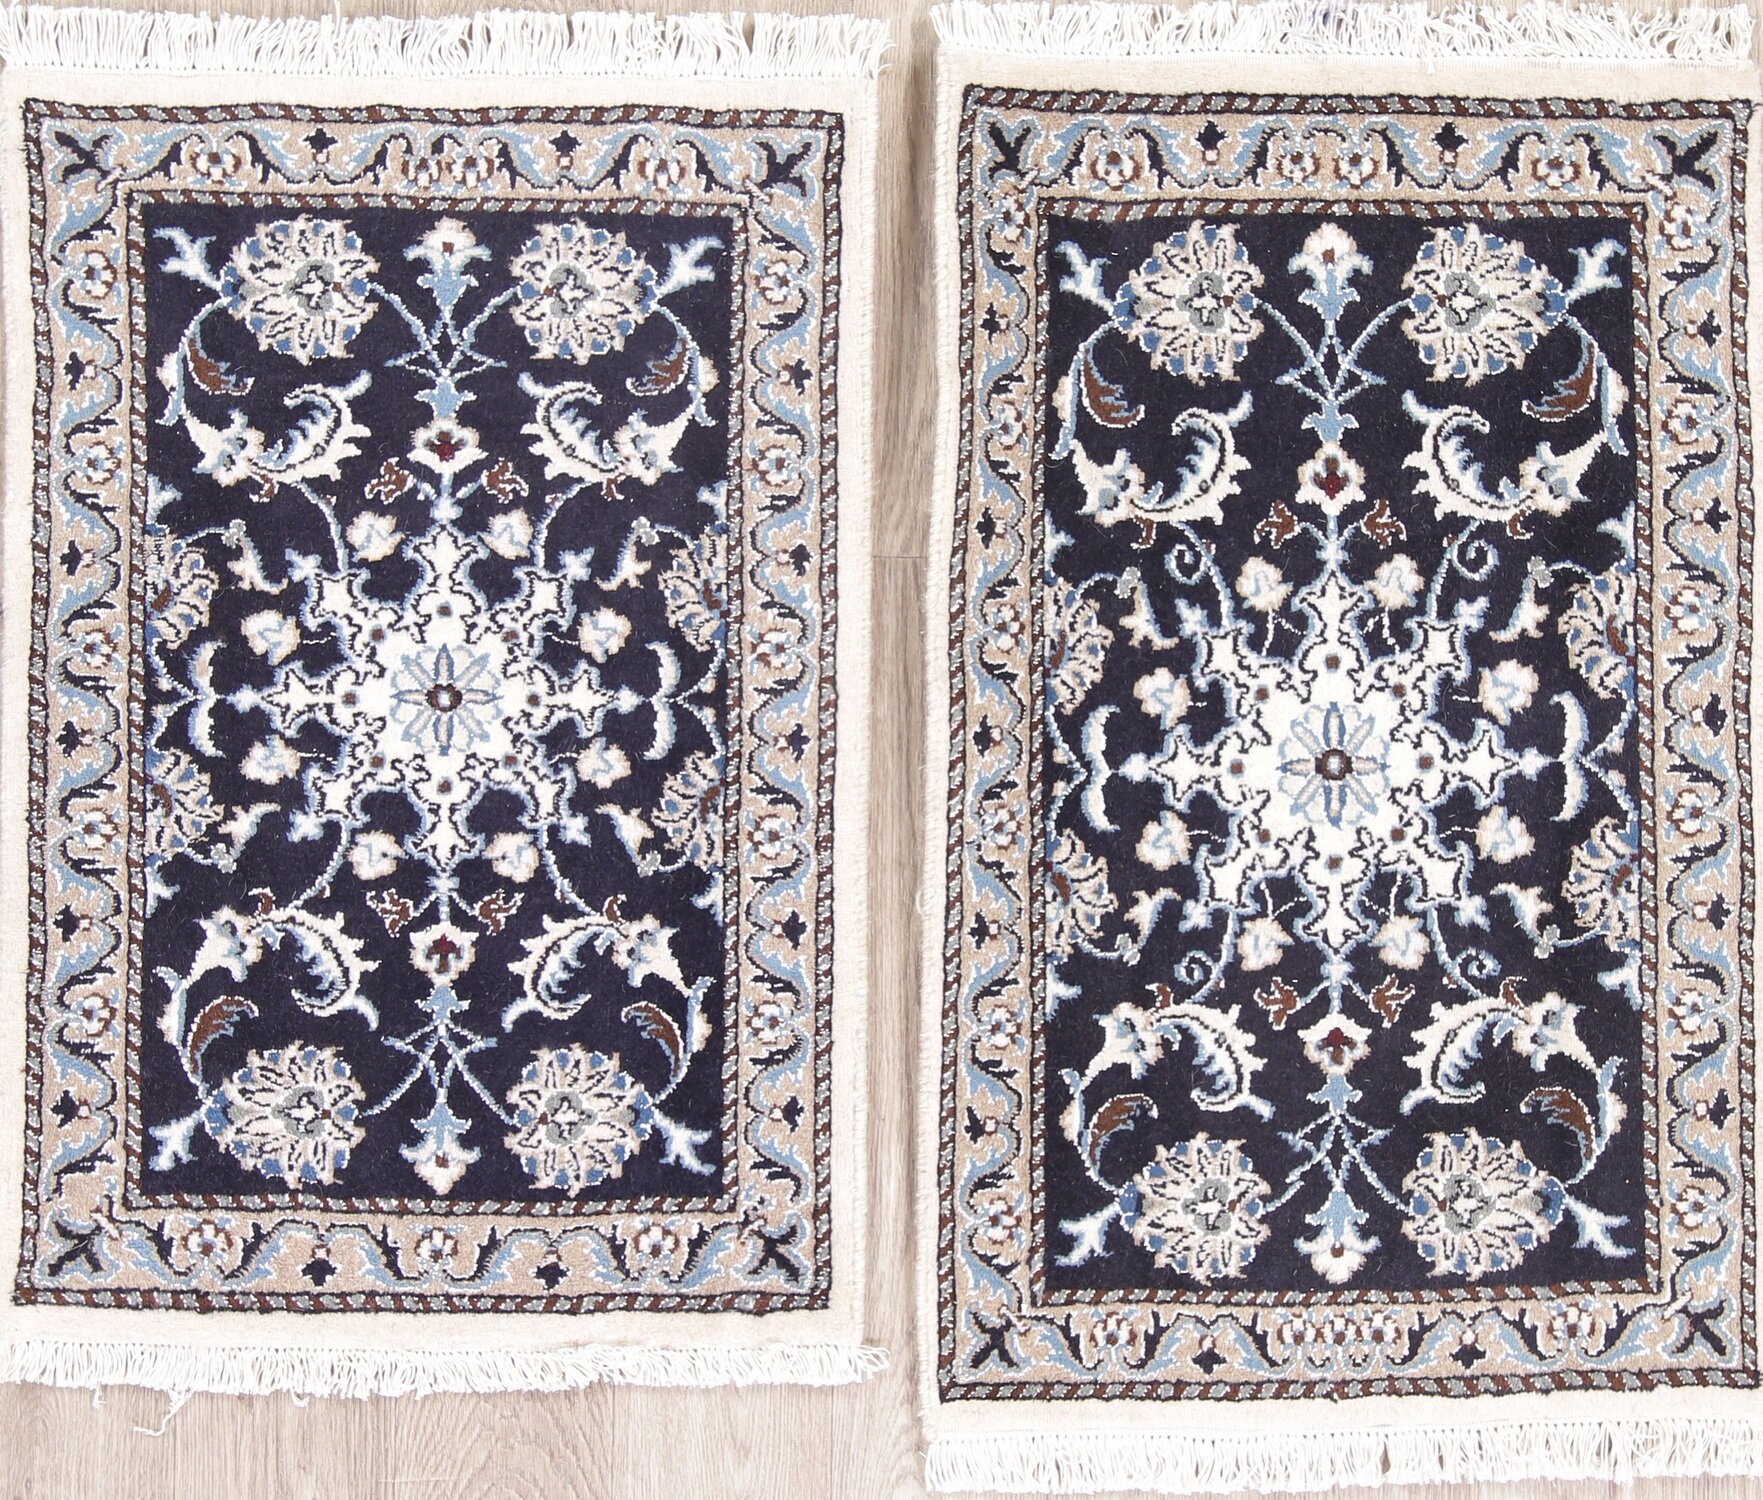 Worksop Pair Of Two Navy Blue Fl Nain Persian Style Wool Rug 3 0 X 1 10